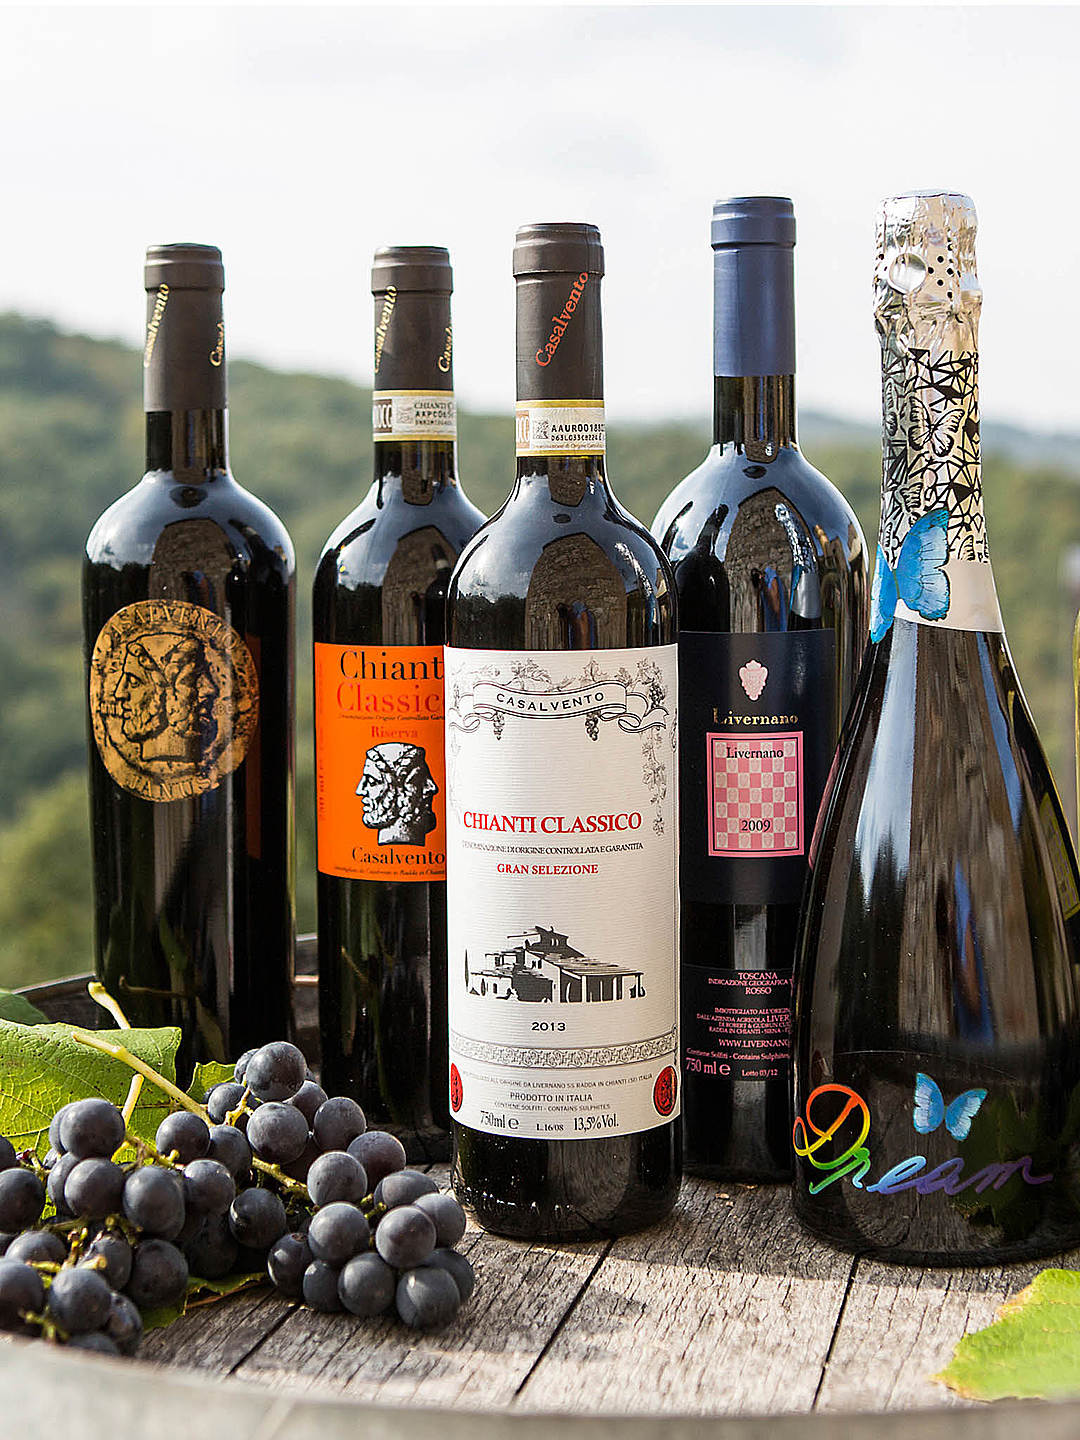 Our full selection of Casalvento, Livernano and other wines will match-up perfectly!